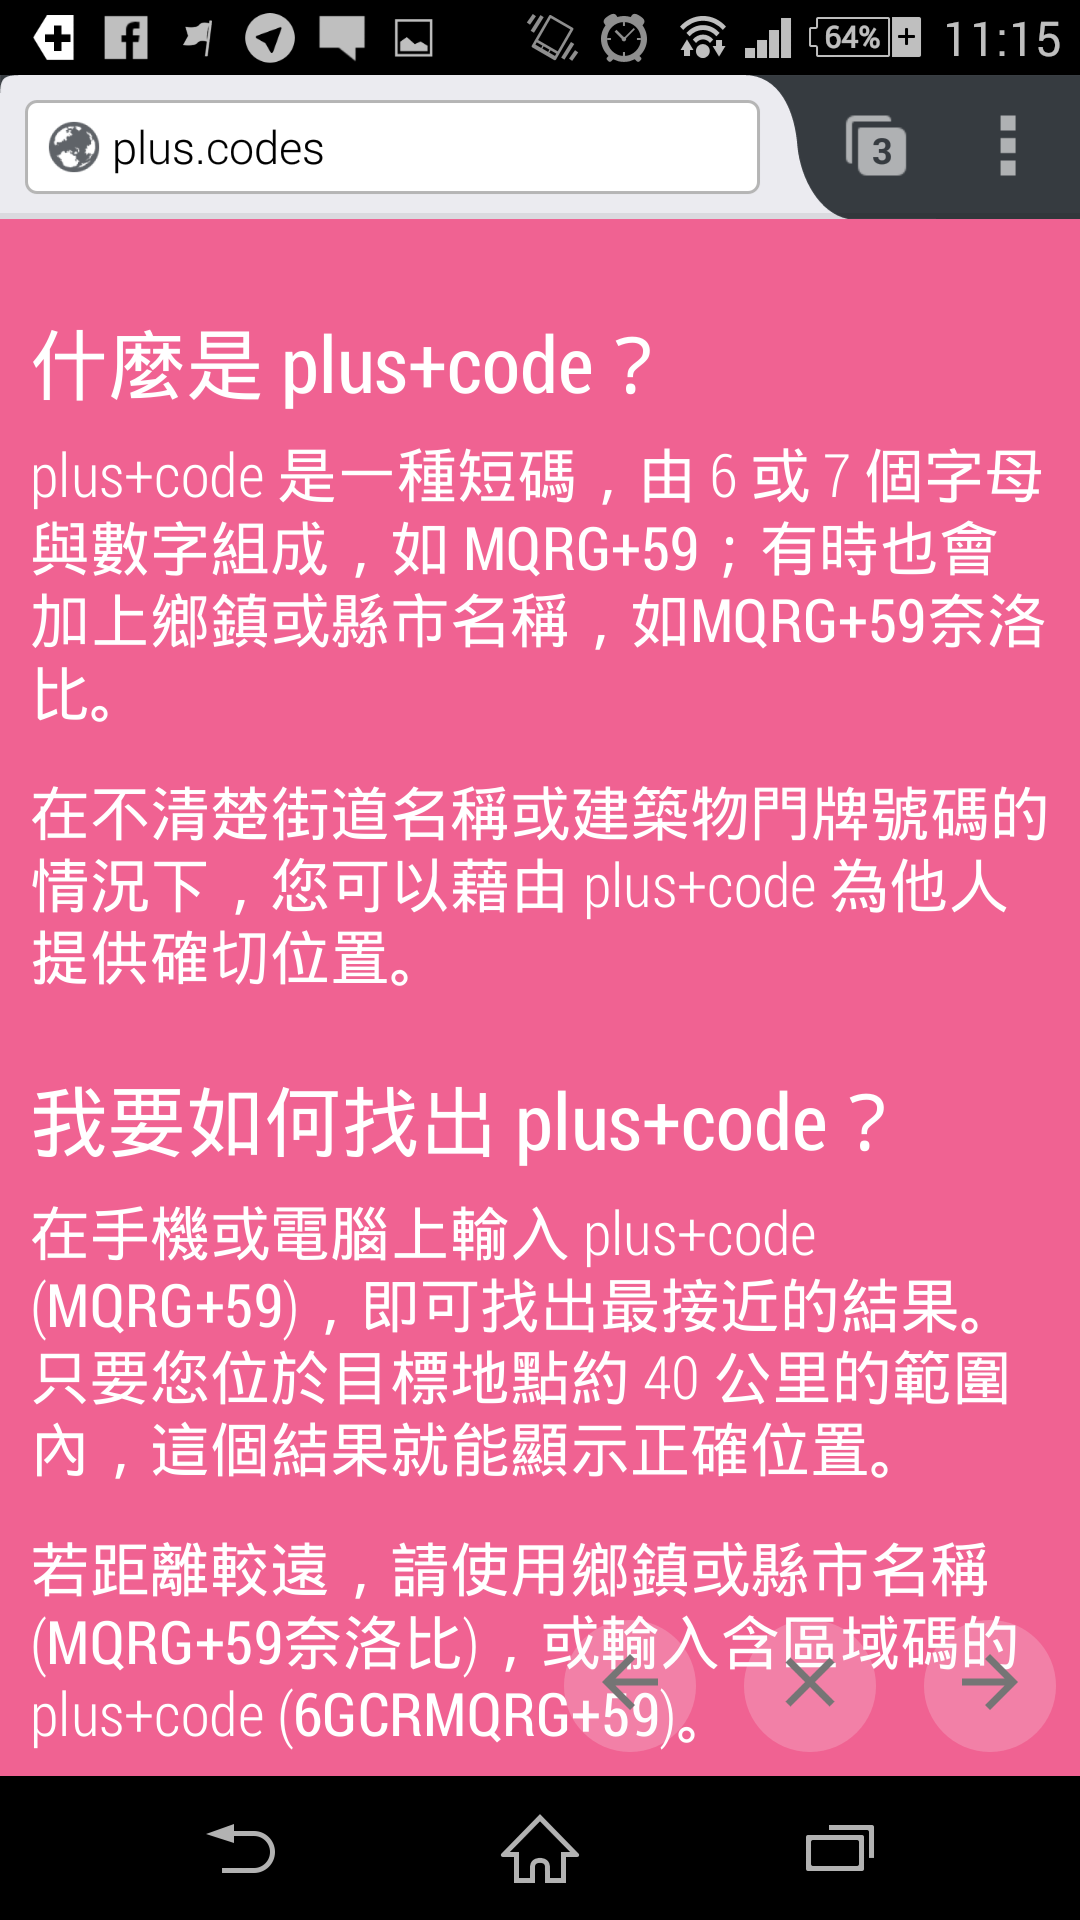 plus+codes-on-mobile-intro